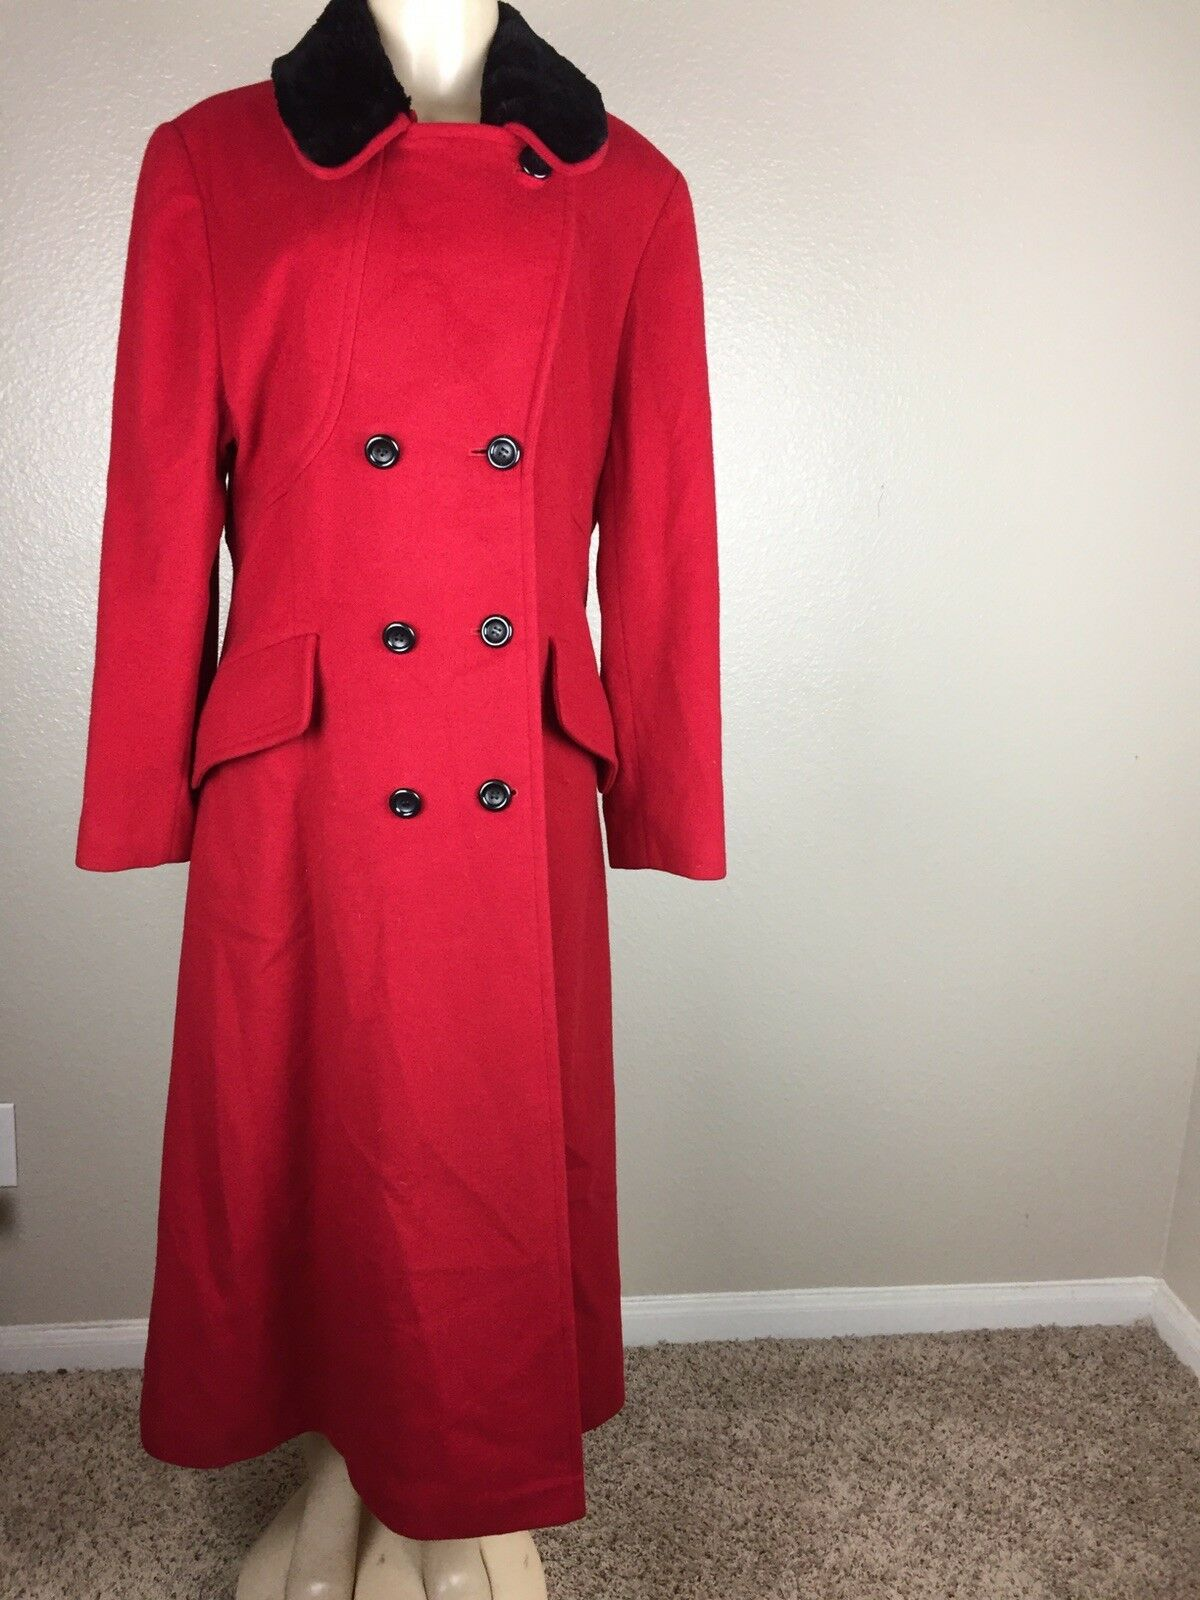 Nina  Ricci Paris Women's  Red Coat Size 14   125999